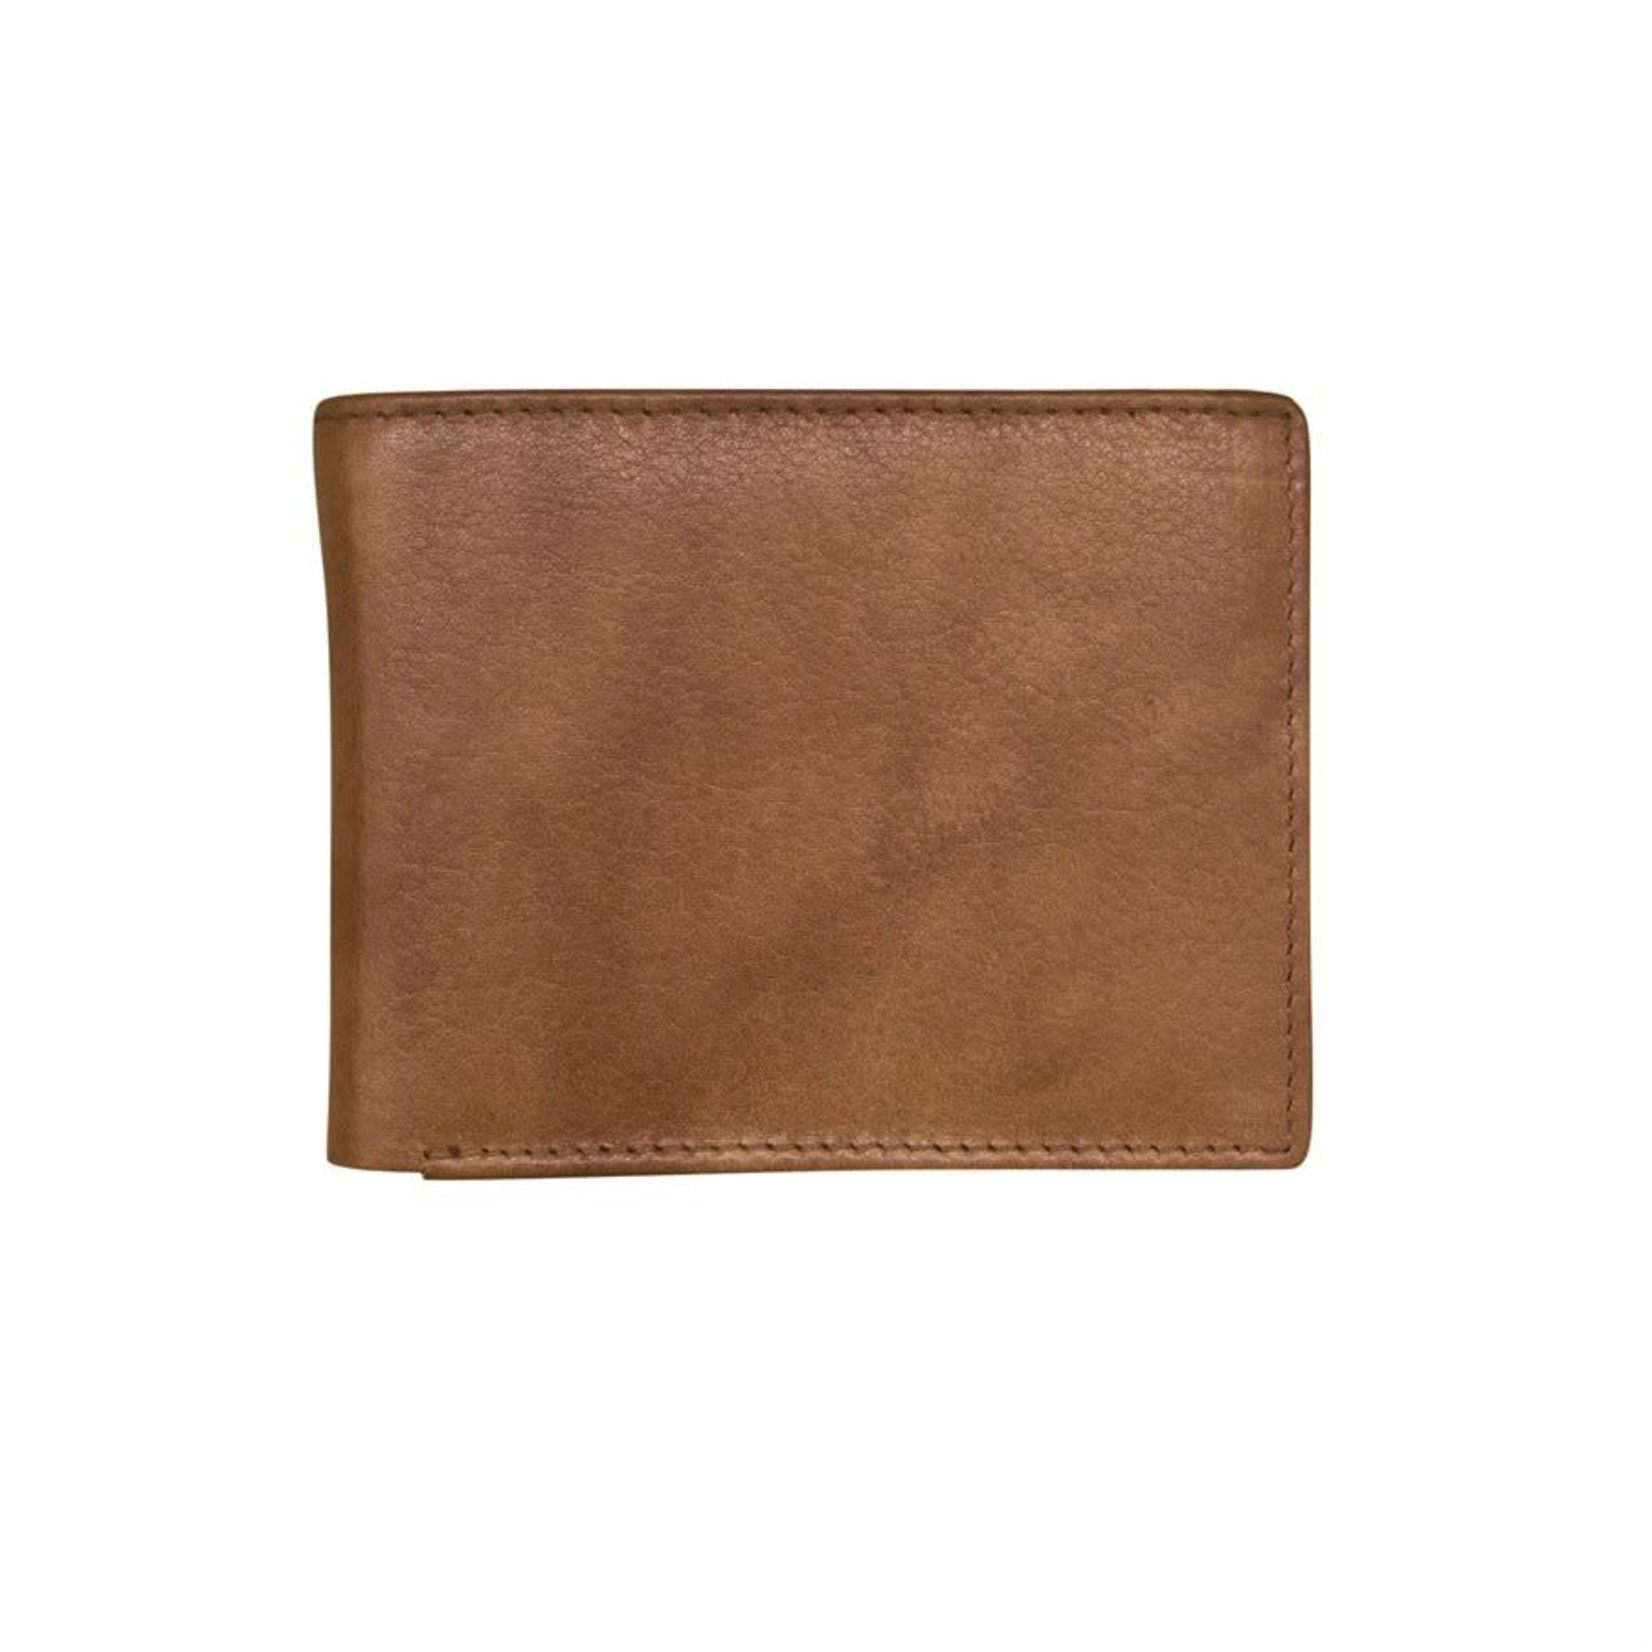 Leather Handbags and Accessories 7751 Antique Saddle - RFID BiFold Wallet